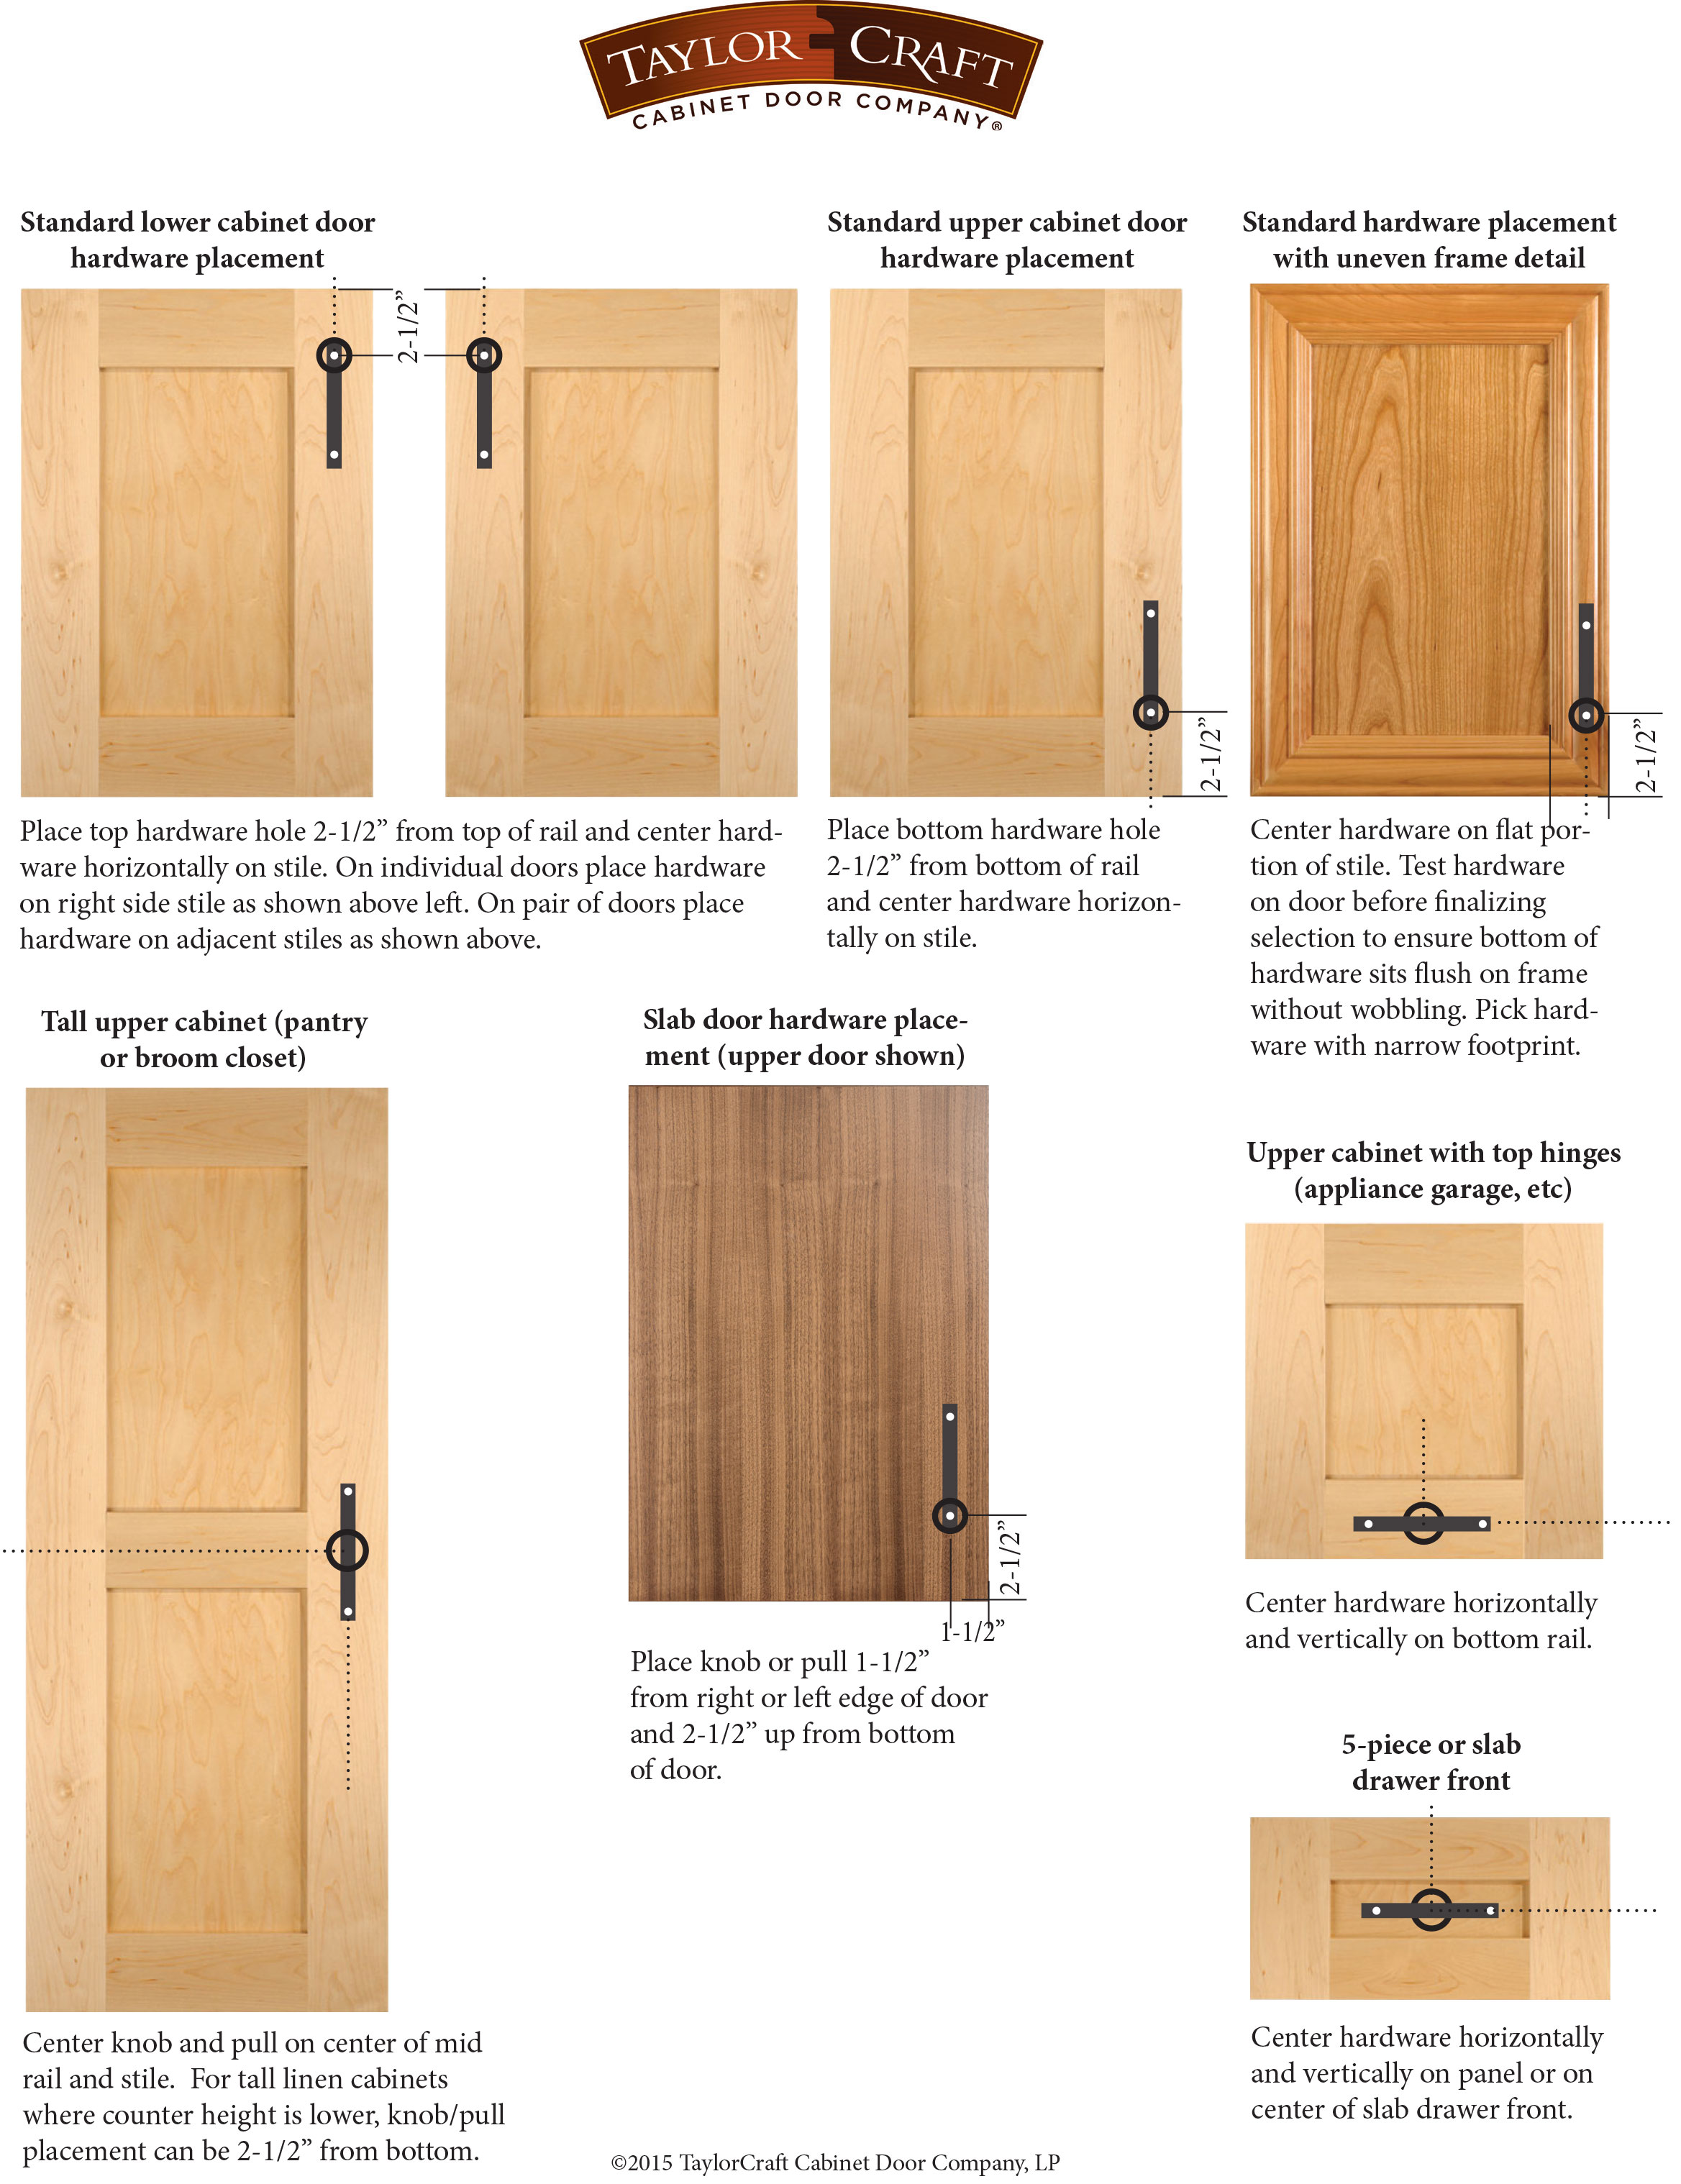 Cabinet Door Hardware Placement Guidelines TaylorCraft Cabinet